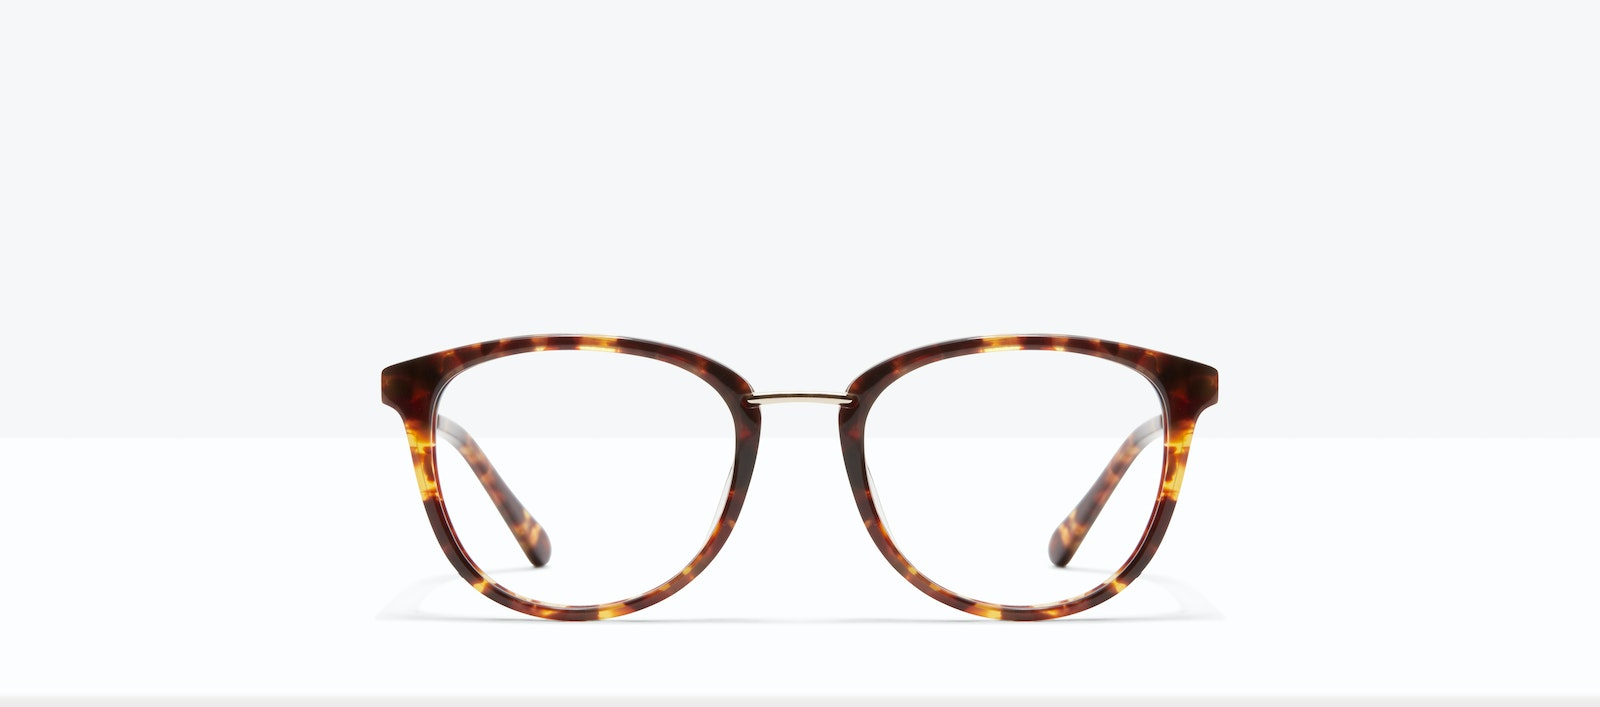 Affordable Fashion Glasses Square Round Eyeglasses Women Bella M Sepia Kiss Front